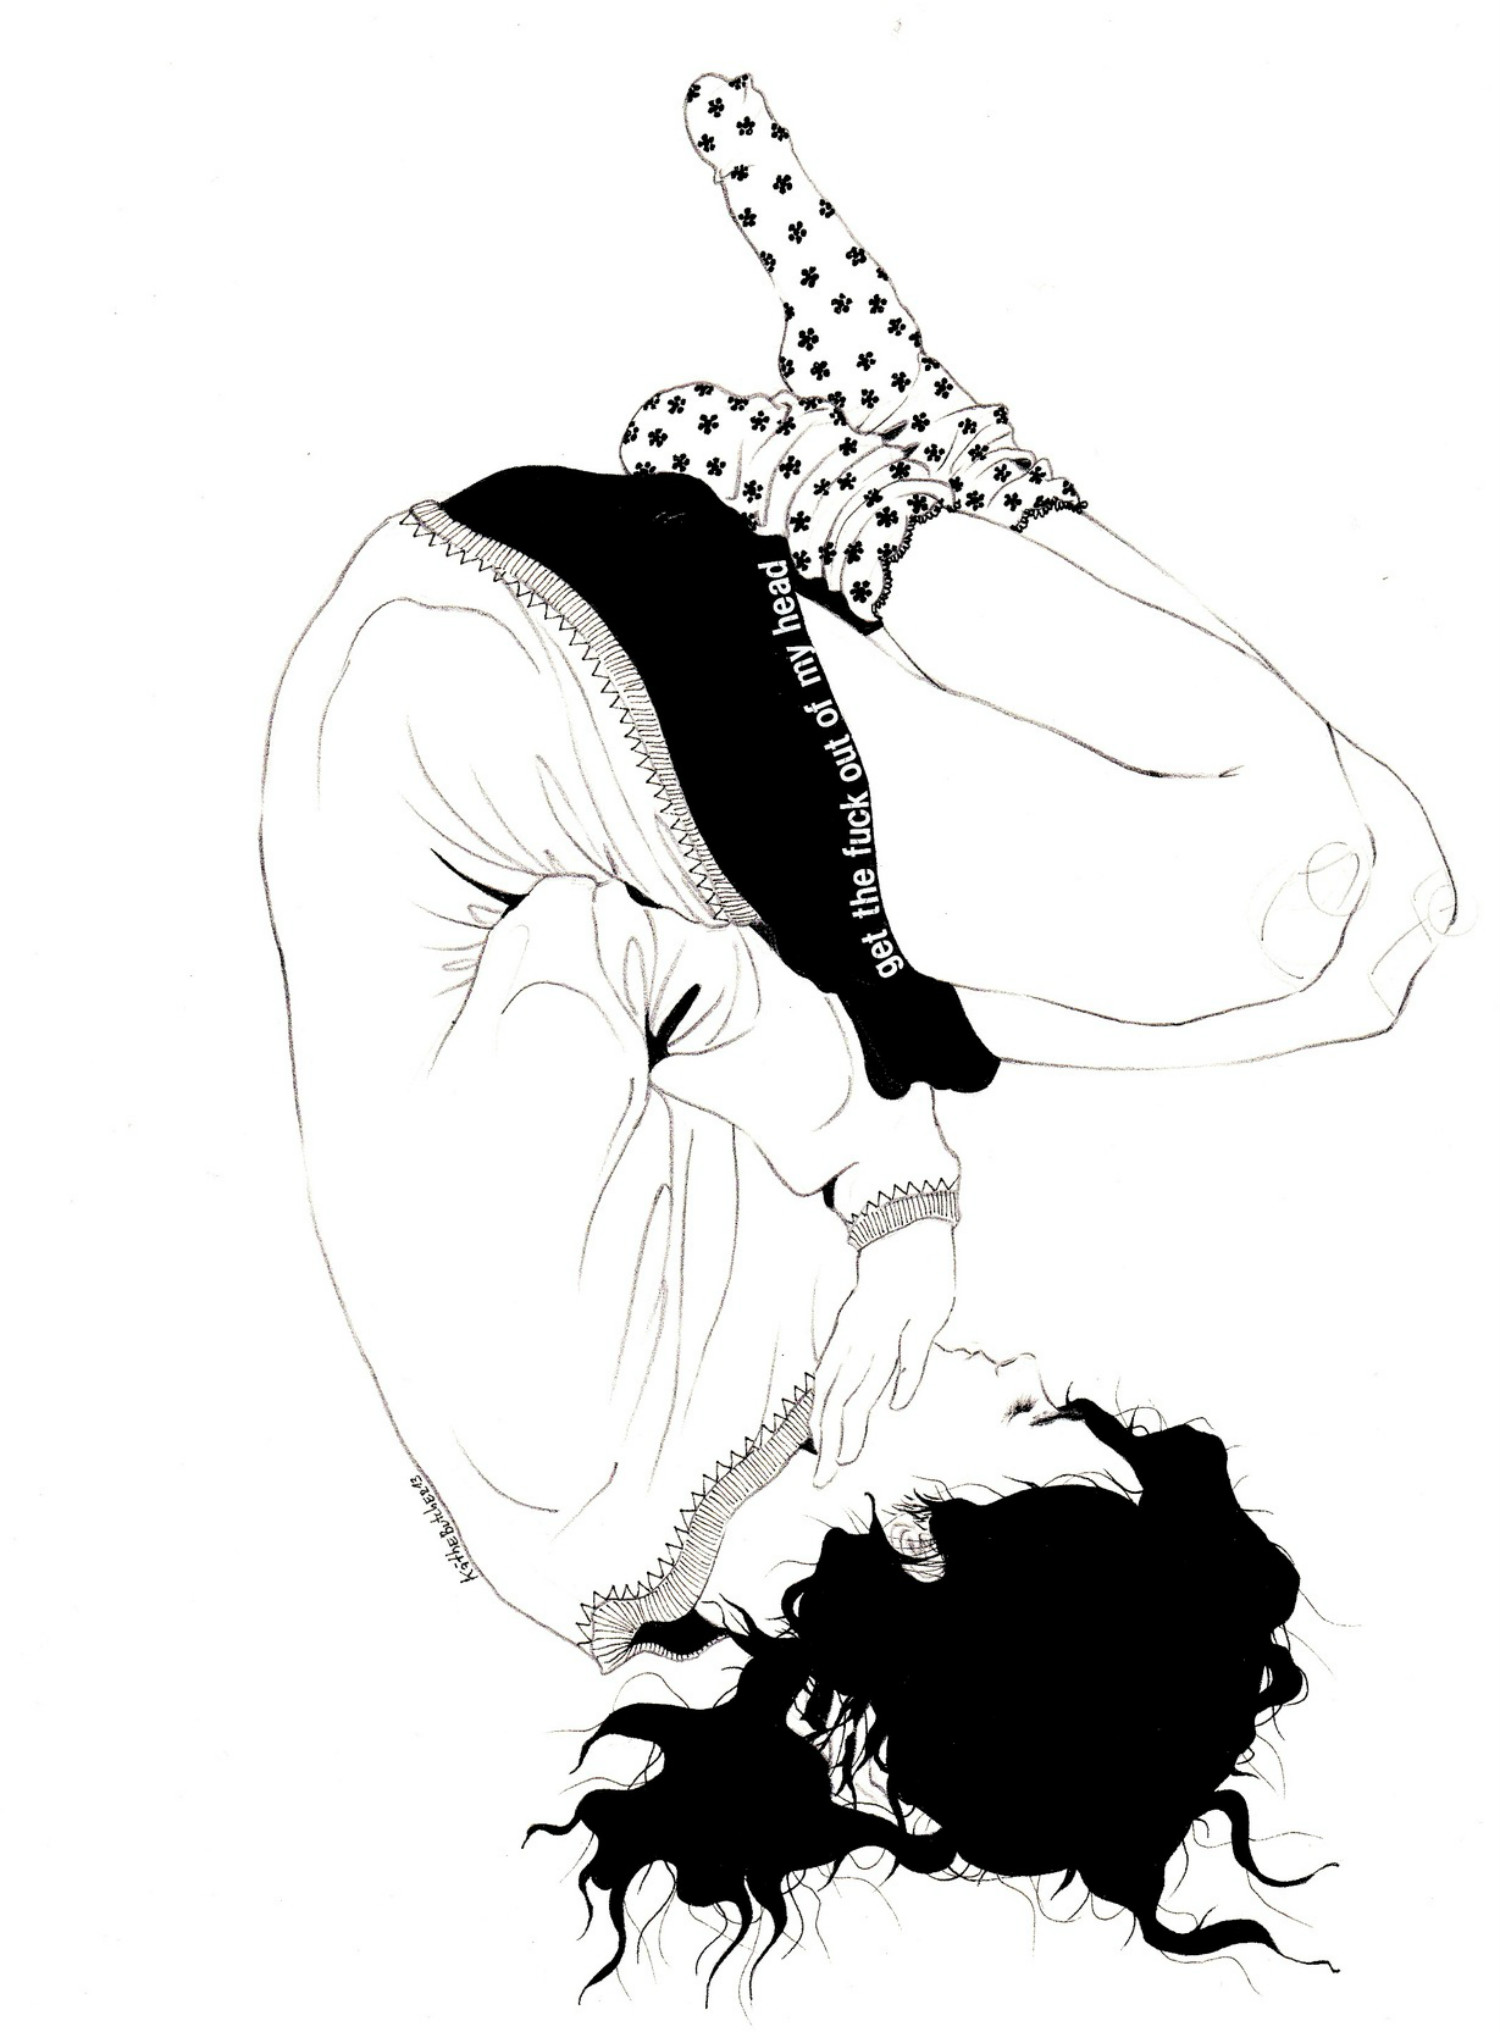 kaethe butcher illustration erotic